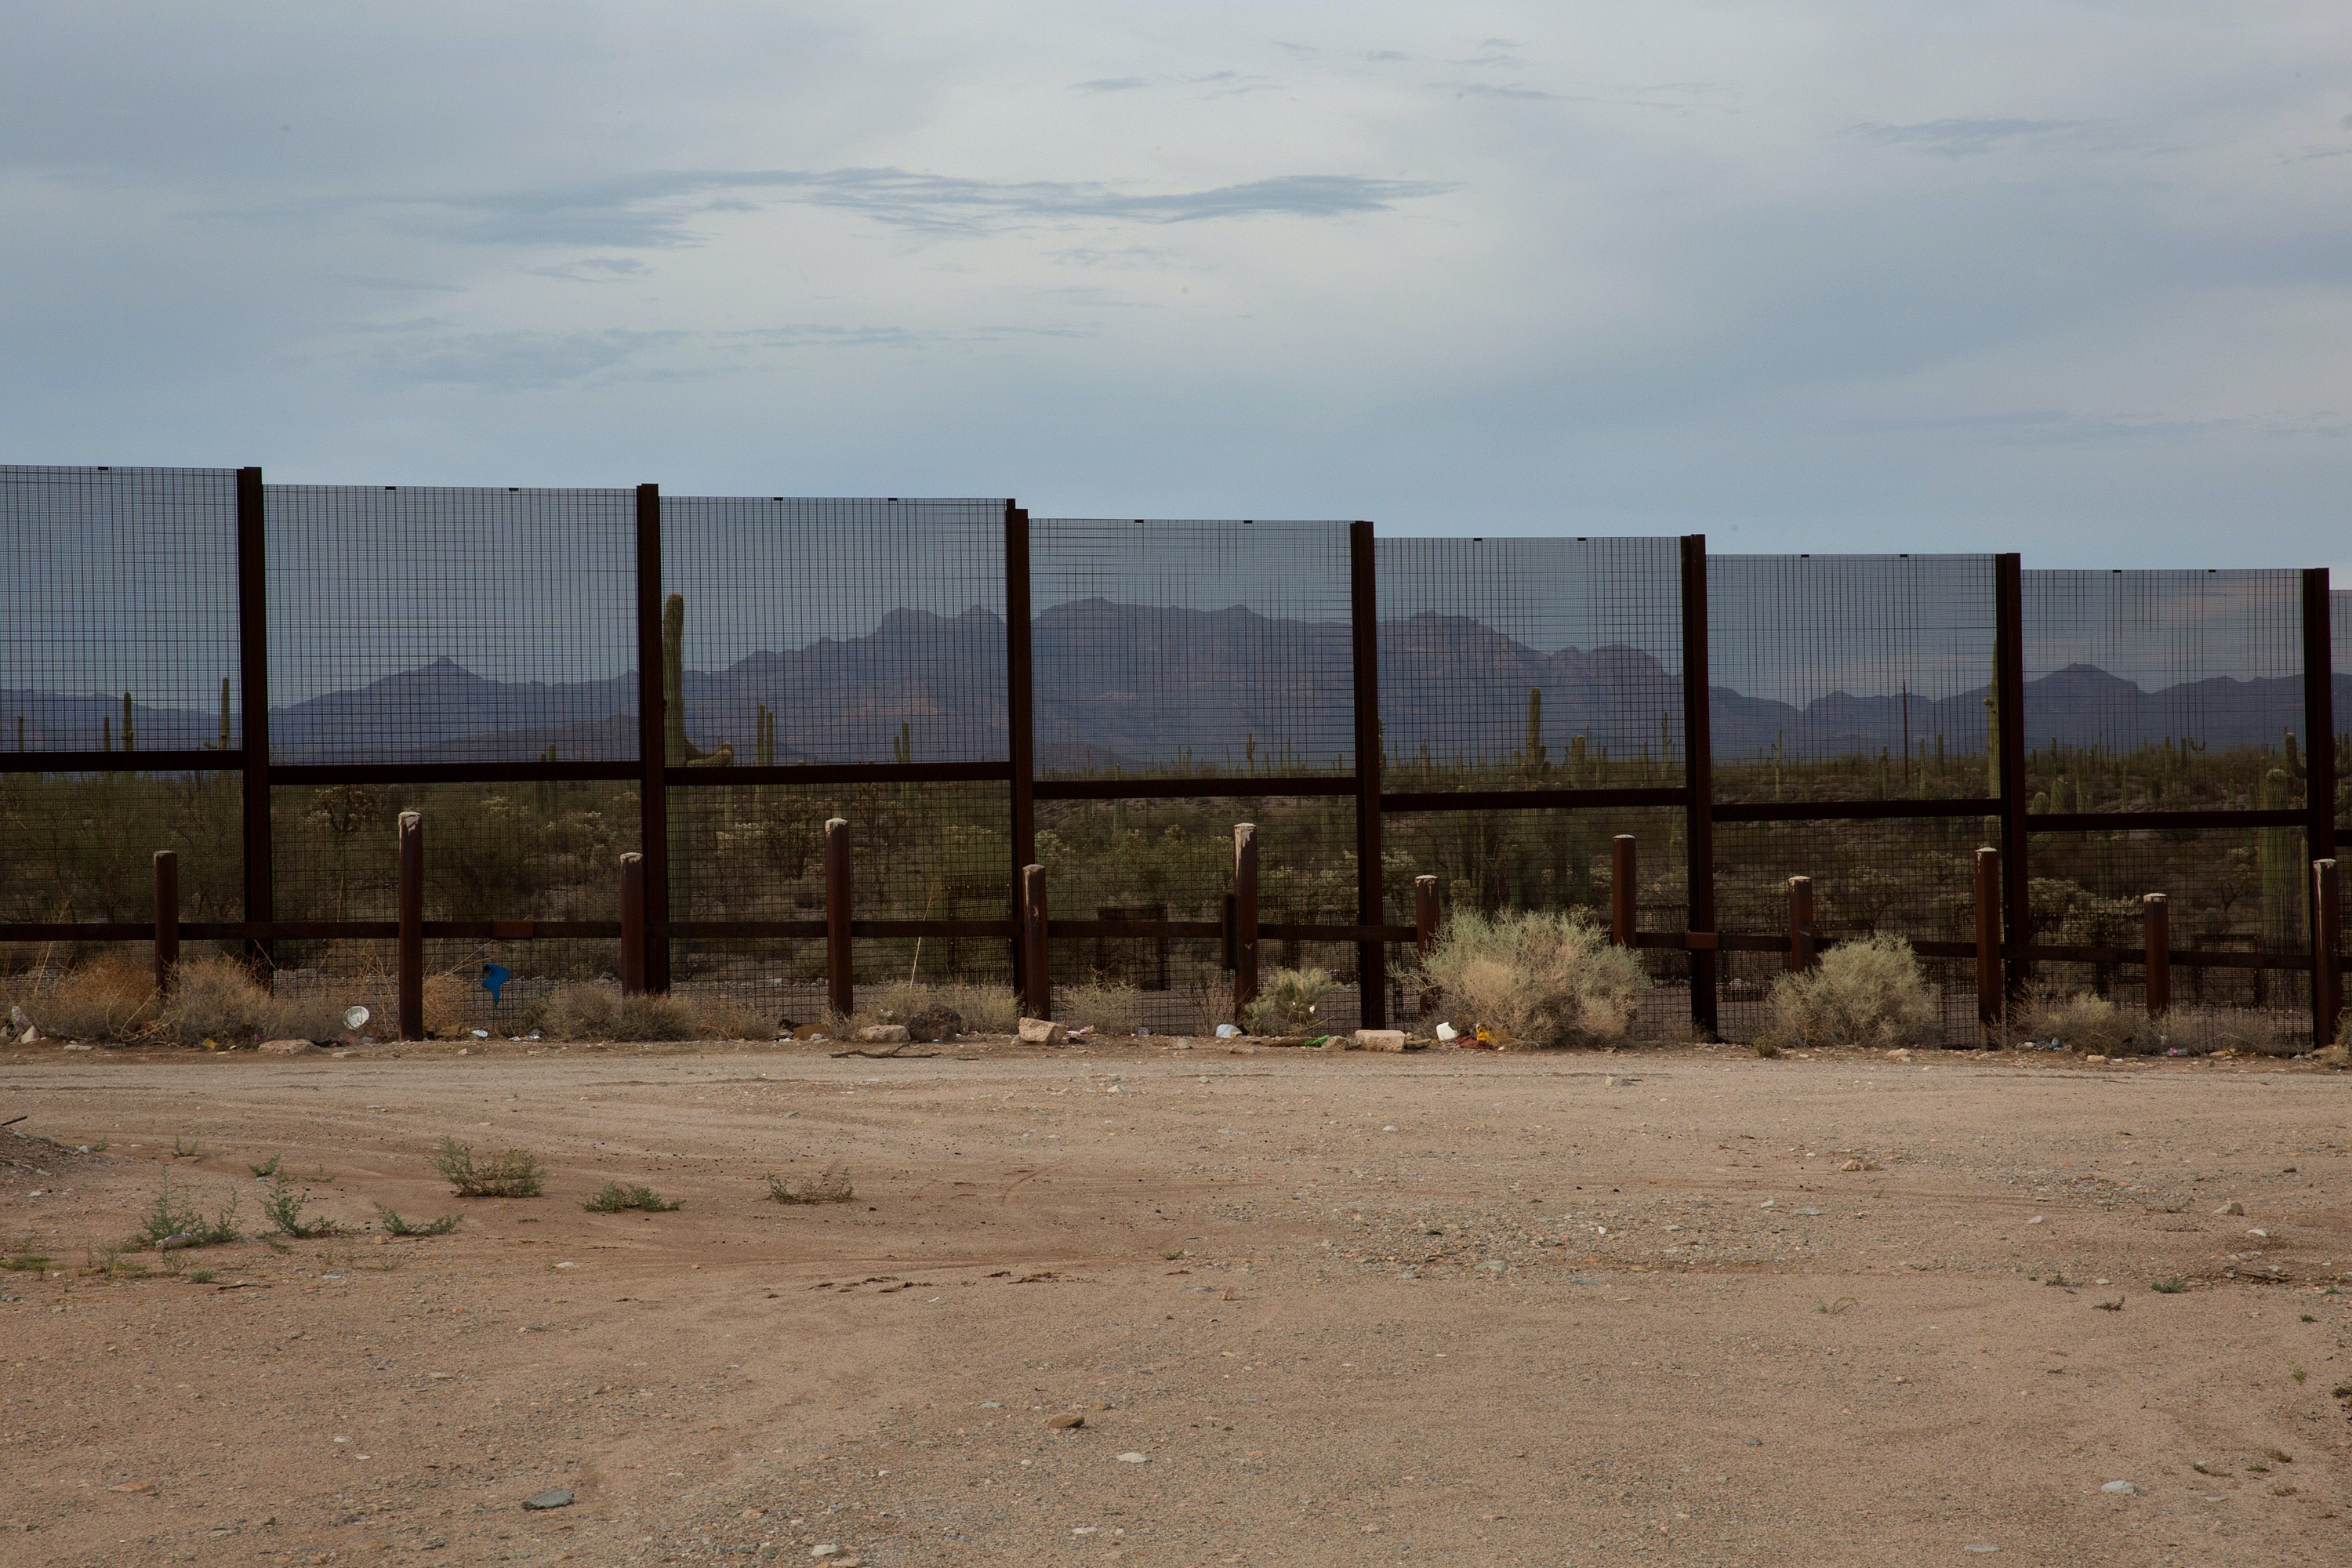 Border fence facing north towards Lukeville, Arizona.